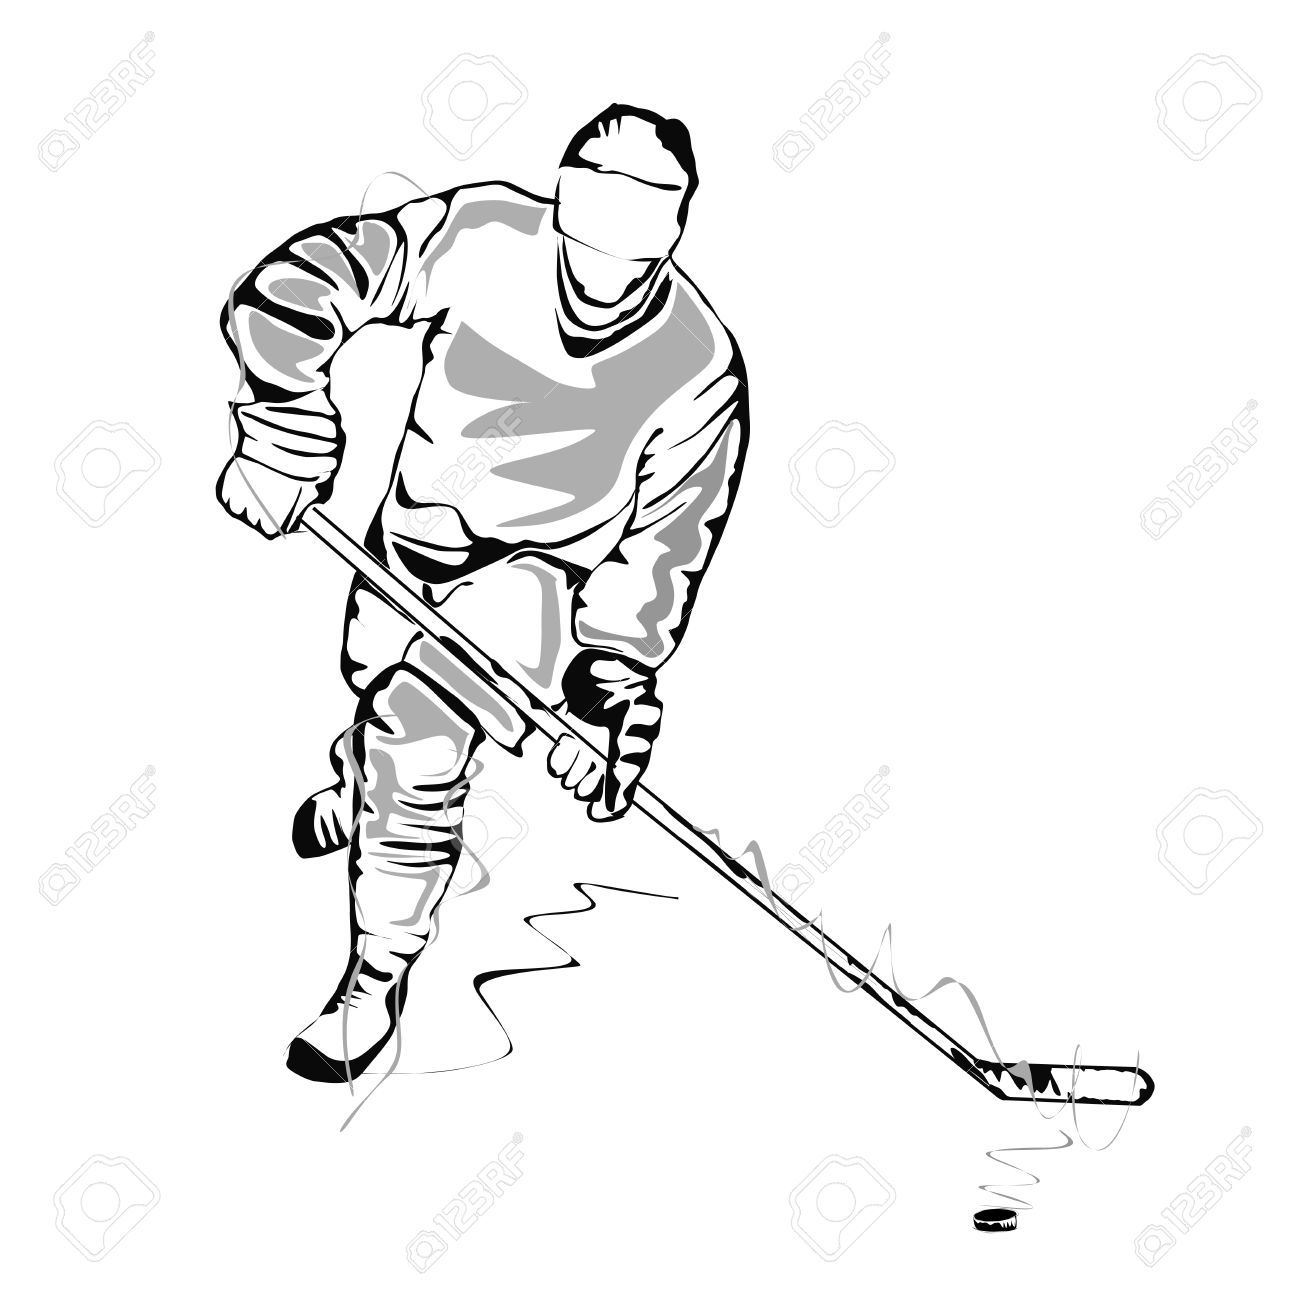 ice hockey player drawing hockey player sketch royalty free cliparts vectors and drawing player hockey ice